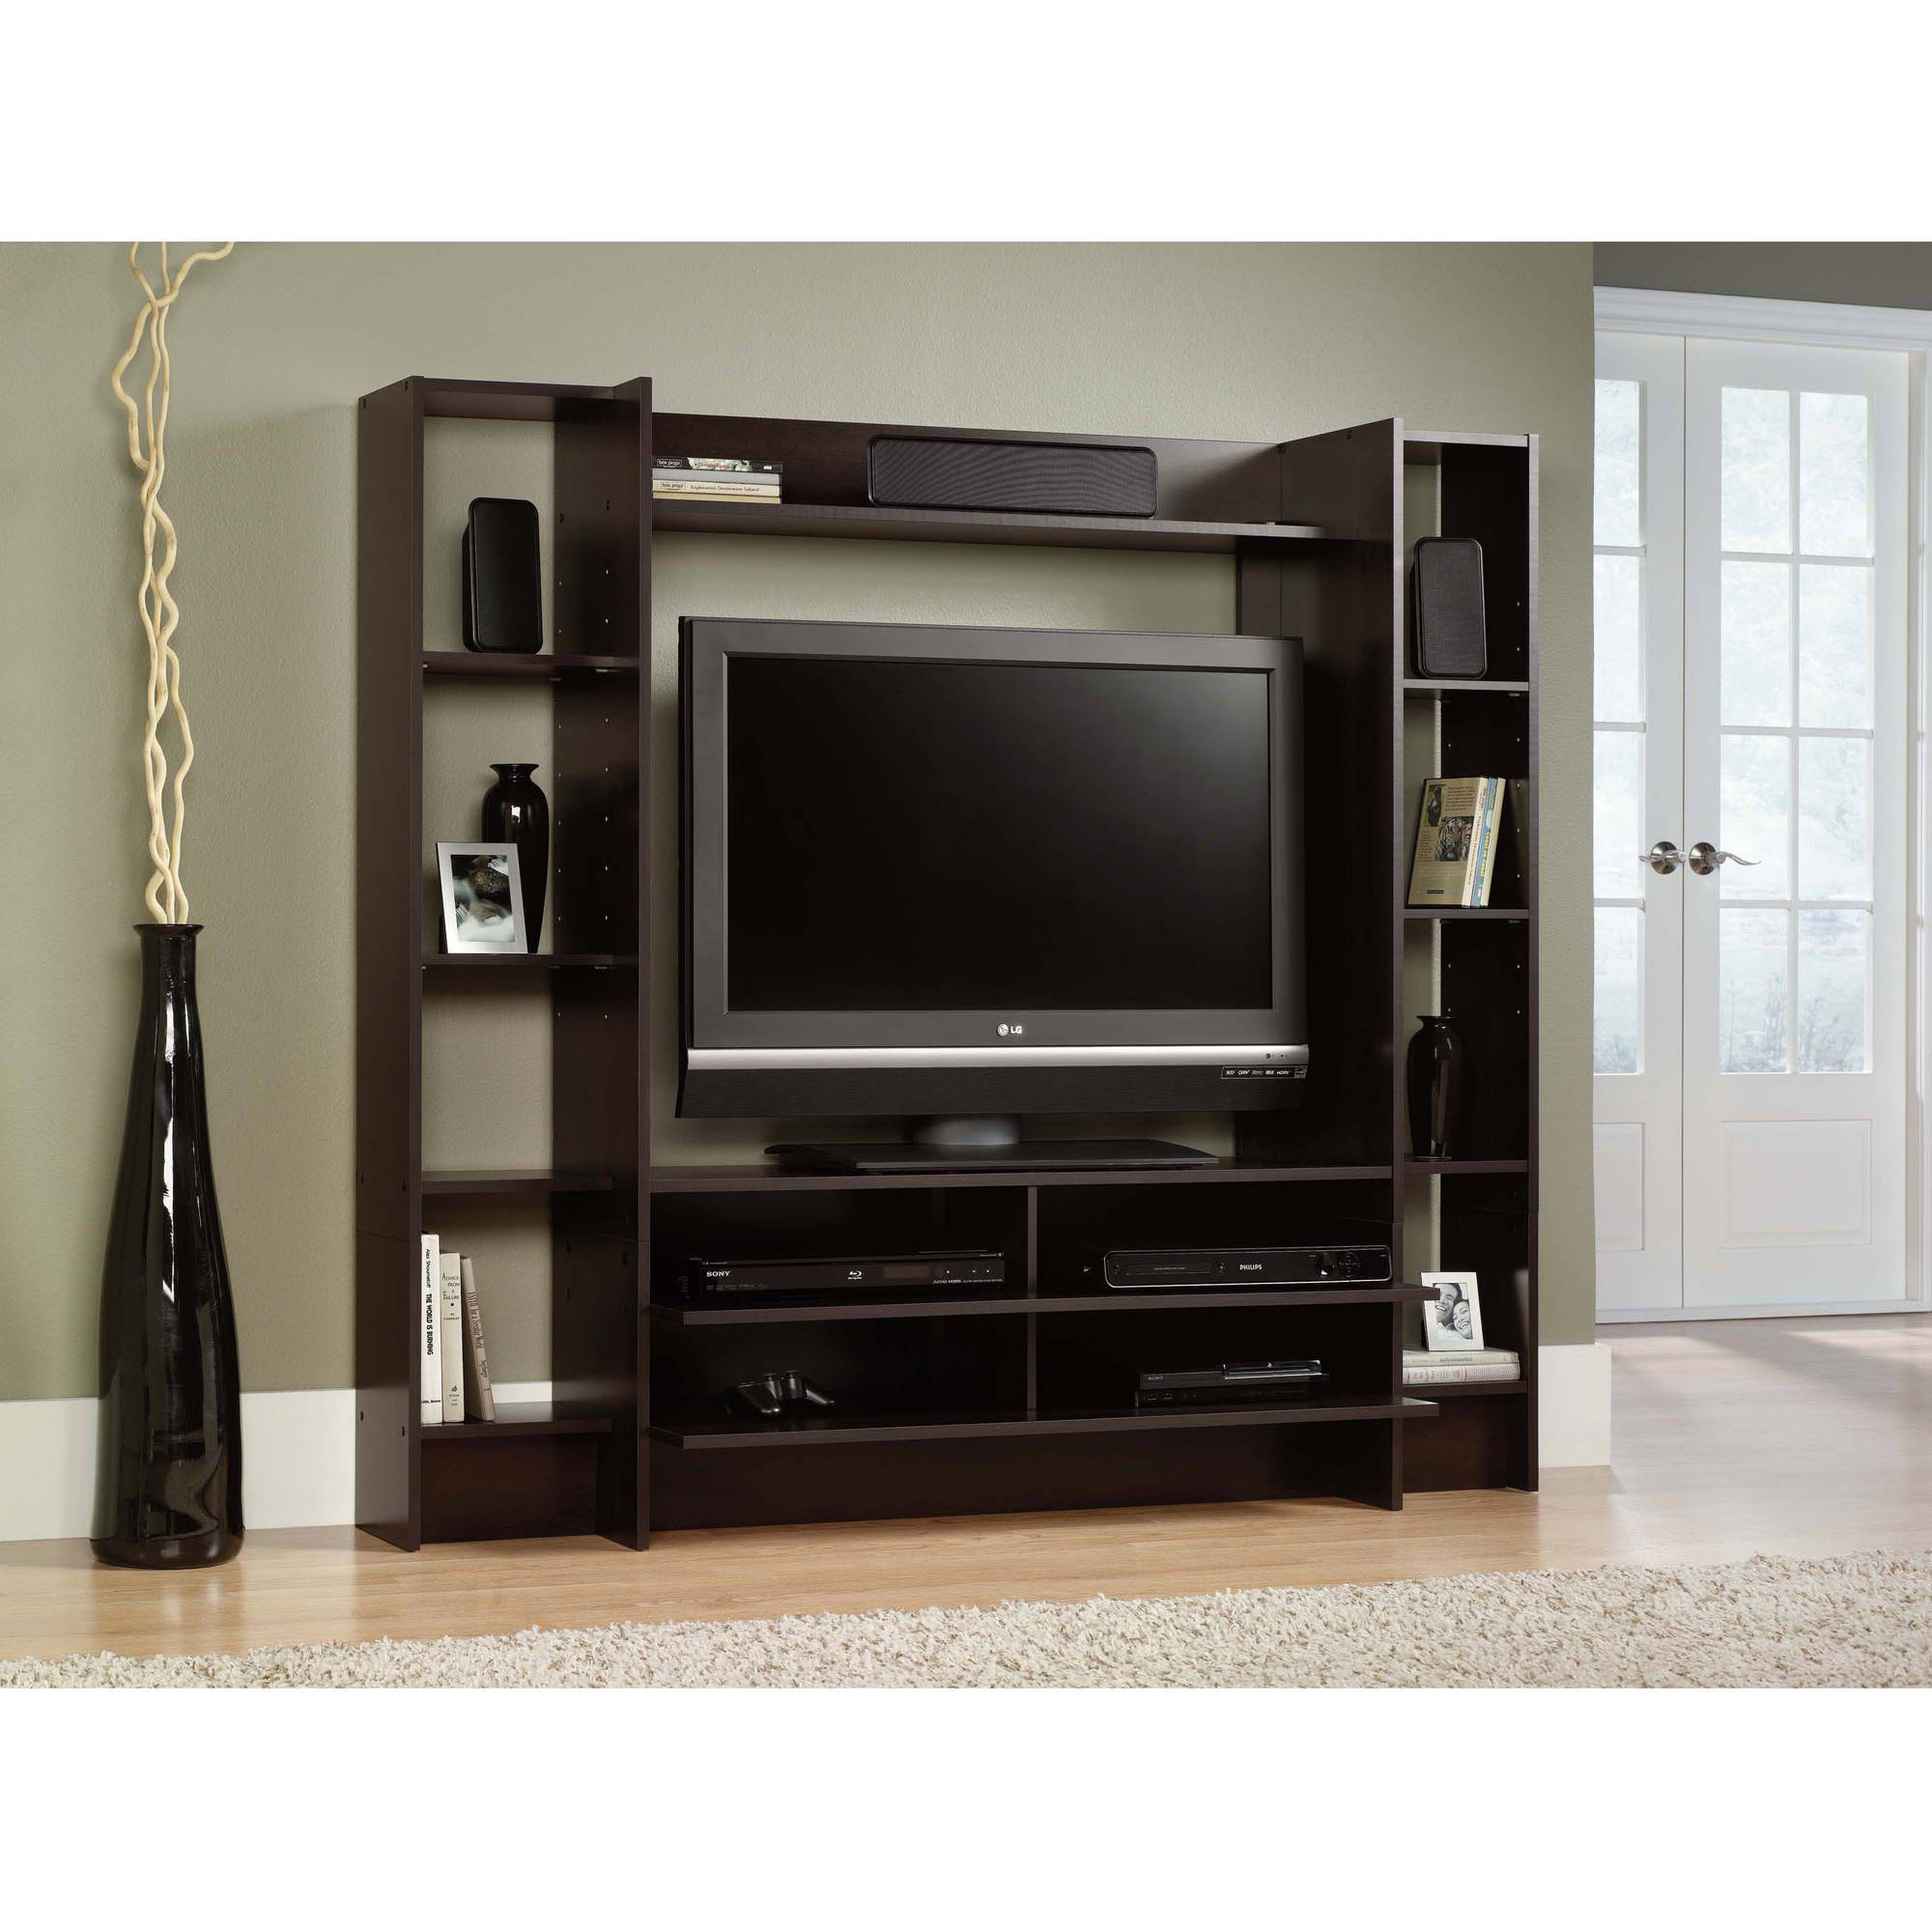 tv stands & entertainment centers - walmart